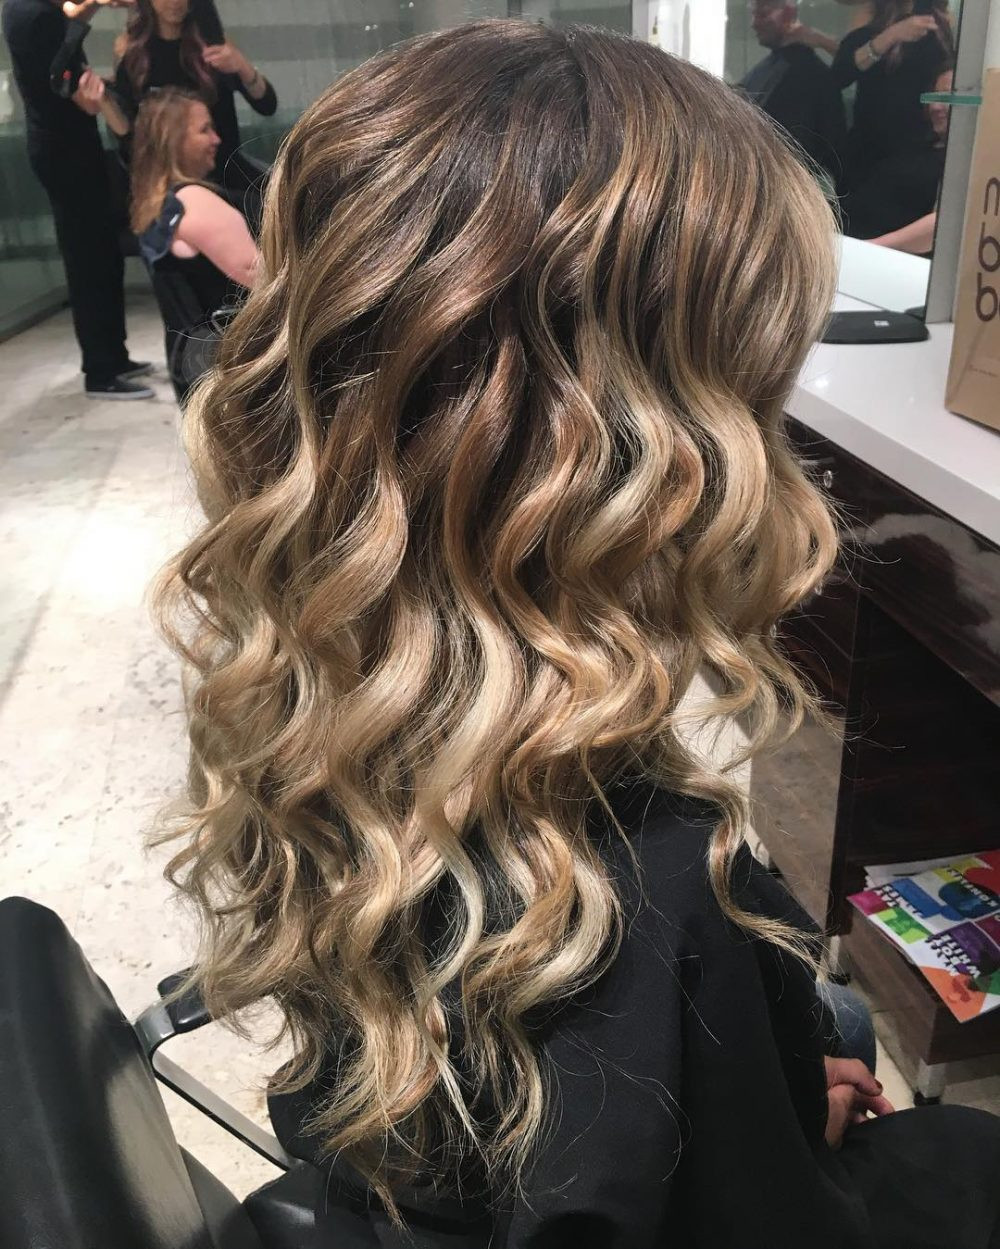 Best ideas about Prom Hairstyles For Curly Hair . Save or Pin 18 Stunning Curly Prom Hairstyles for 2019 Updos Down Now.